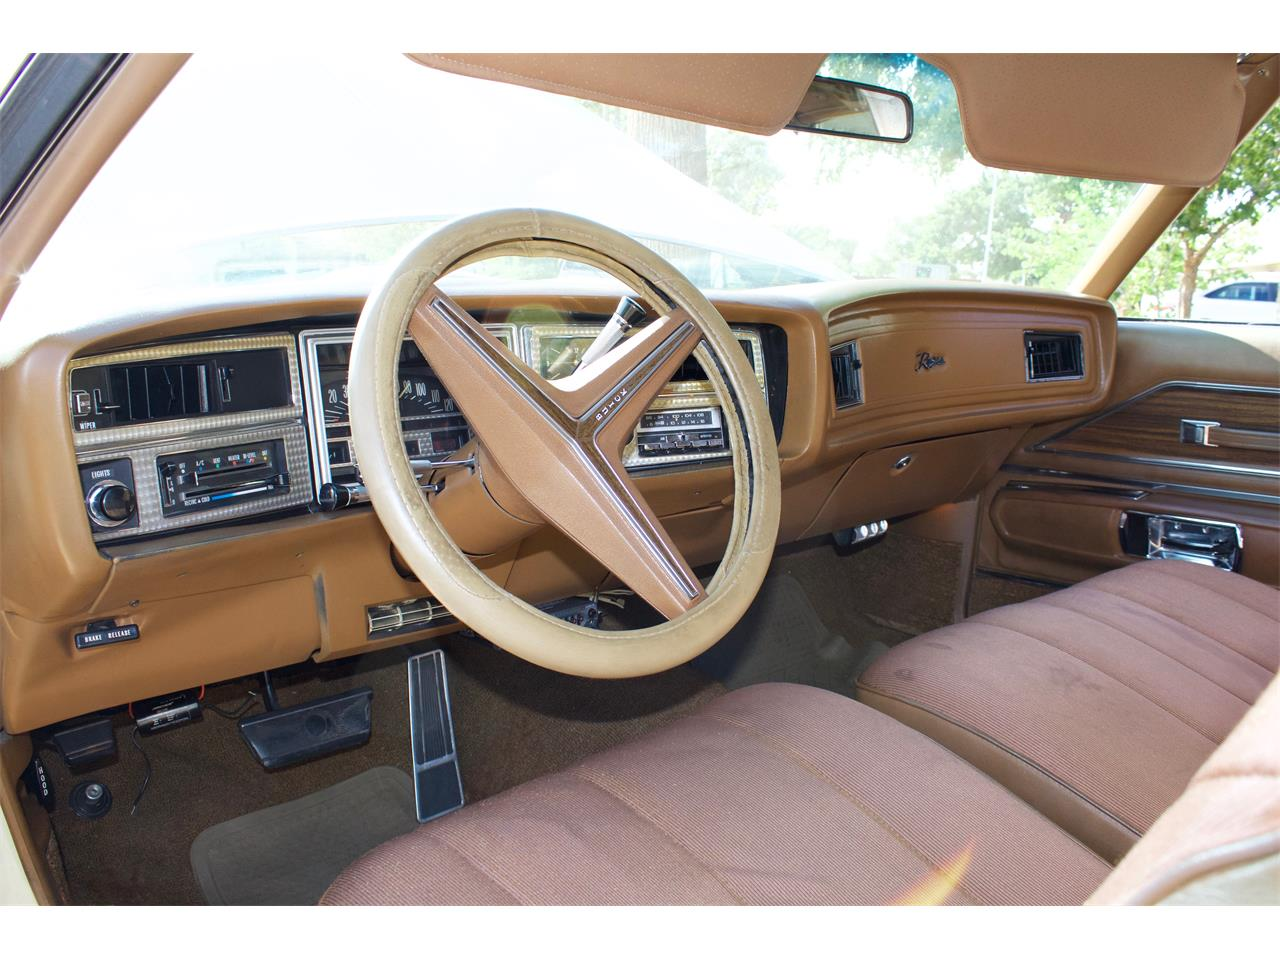 Large Picture of Classic '72 Buick Riviera located in Phoenix Arizona Offered by a Private Seller - OOZF